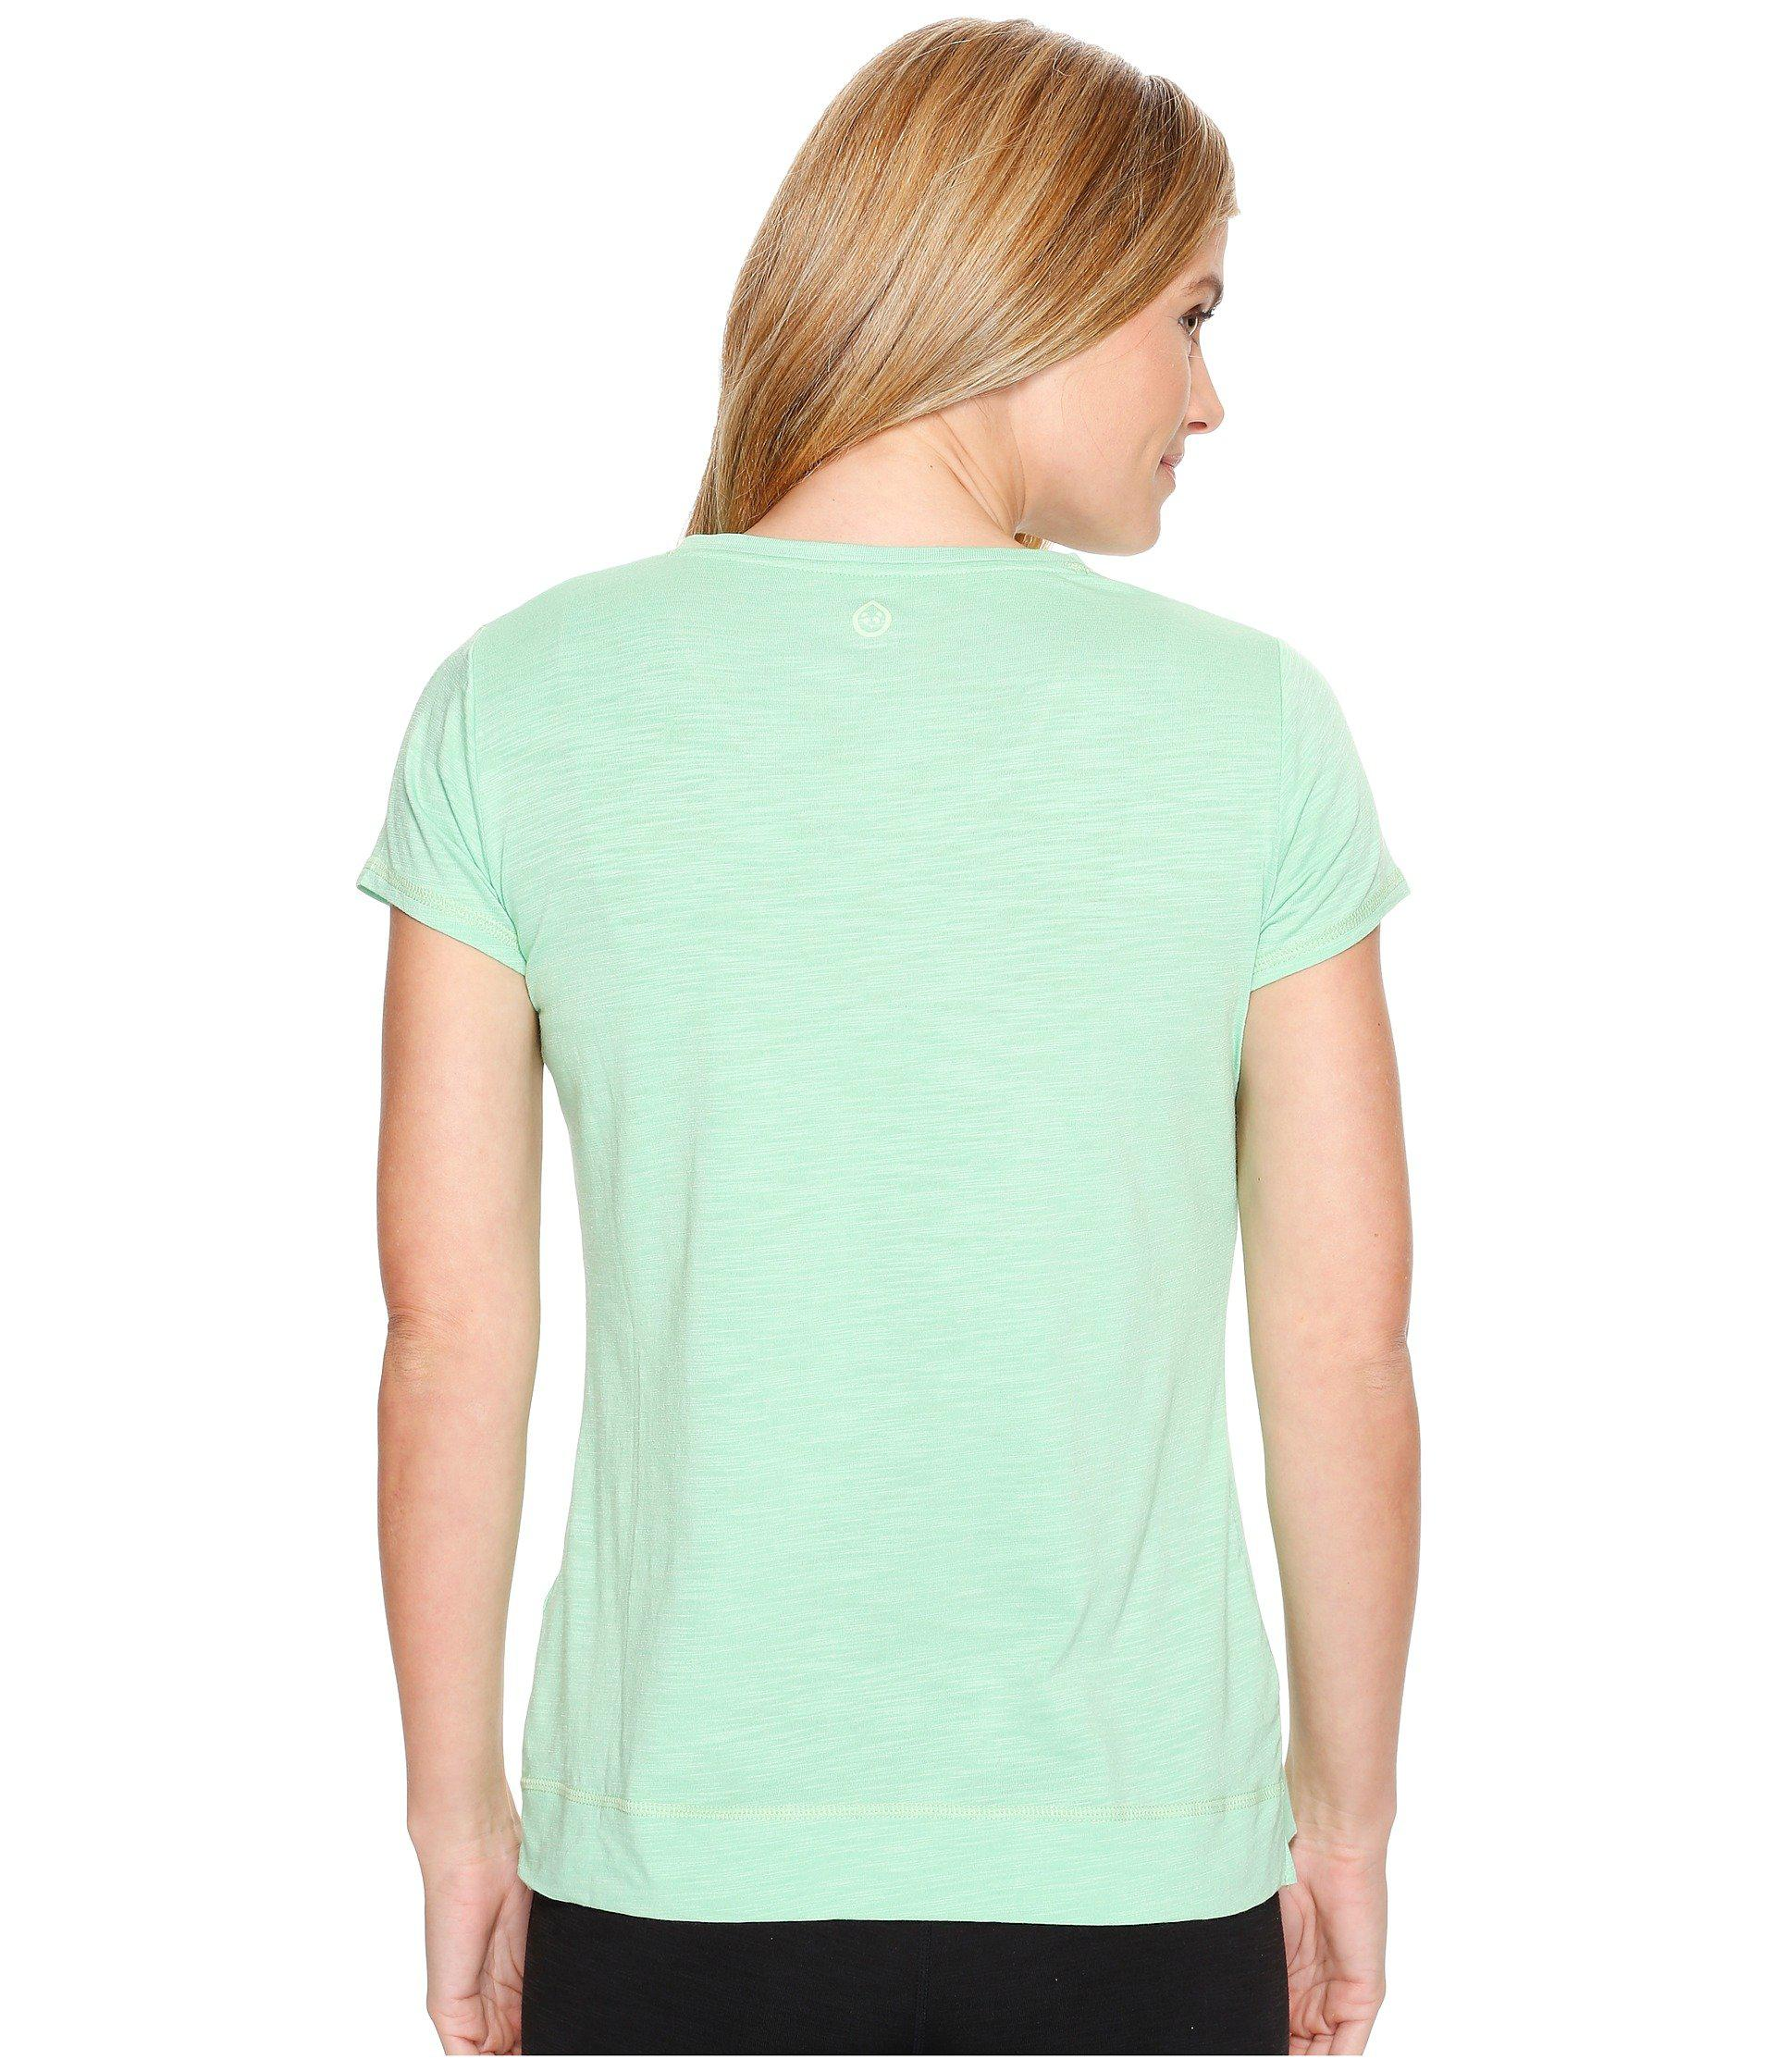 Lyst - Tasc Performance Streets V Top in Green - Save 8%